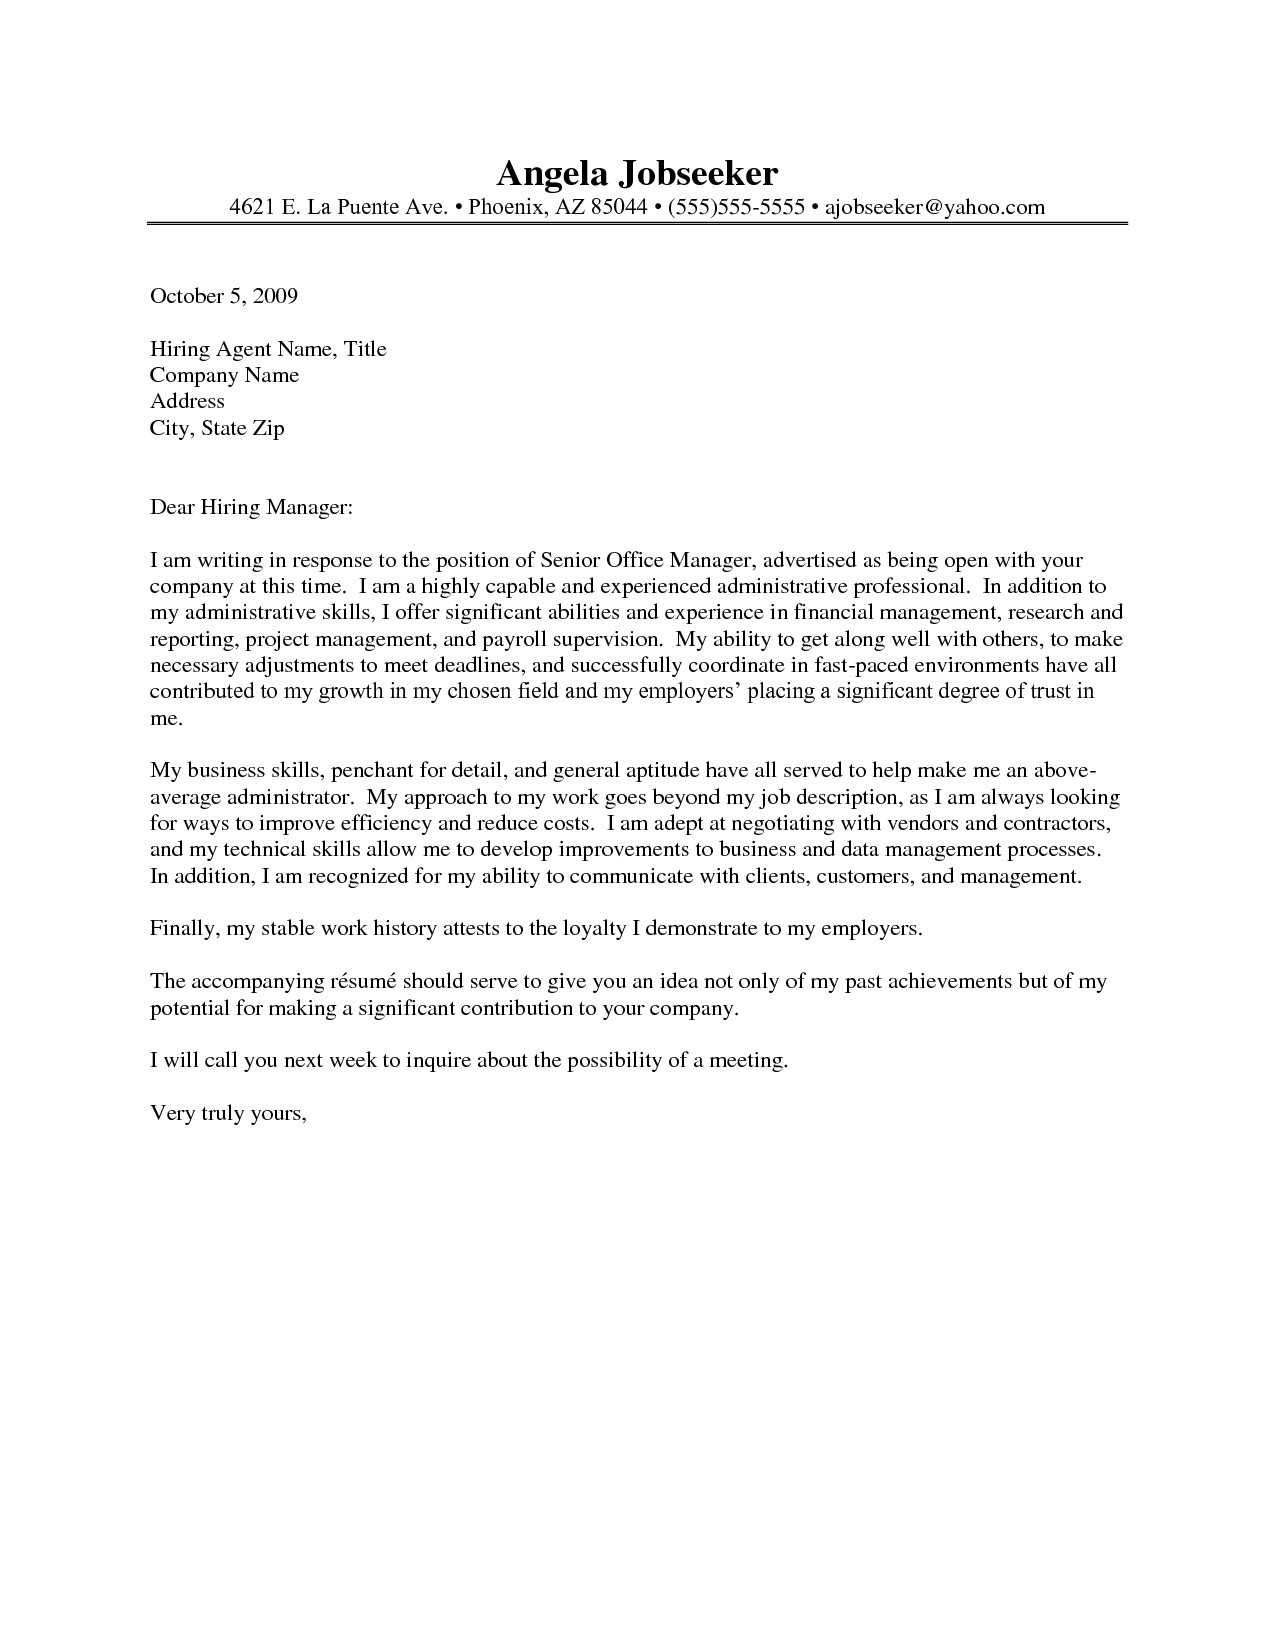 Cover Letter Examples for Administrative assistant Positions Cool Administrative assistant Cover Letter Help for